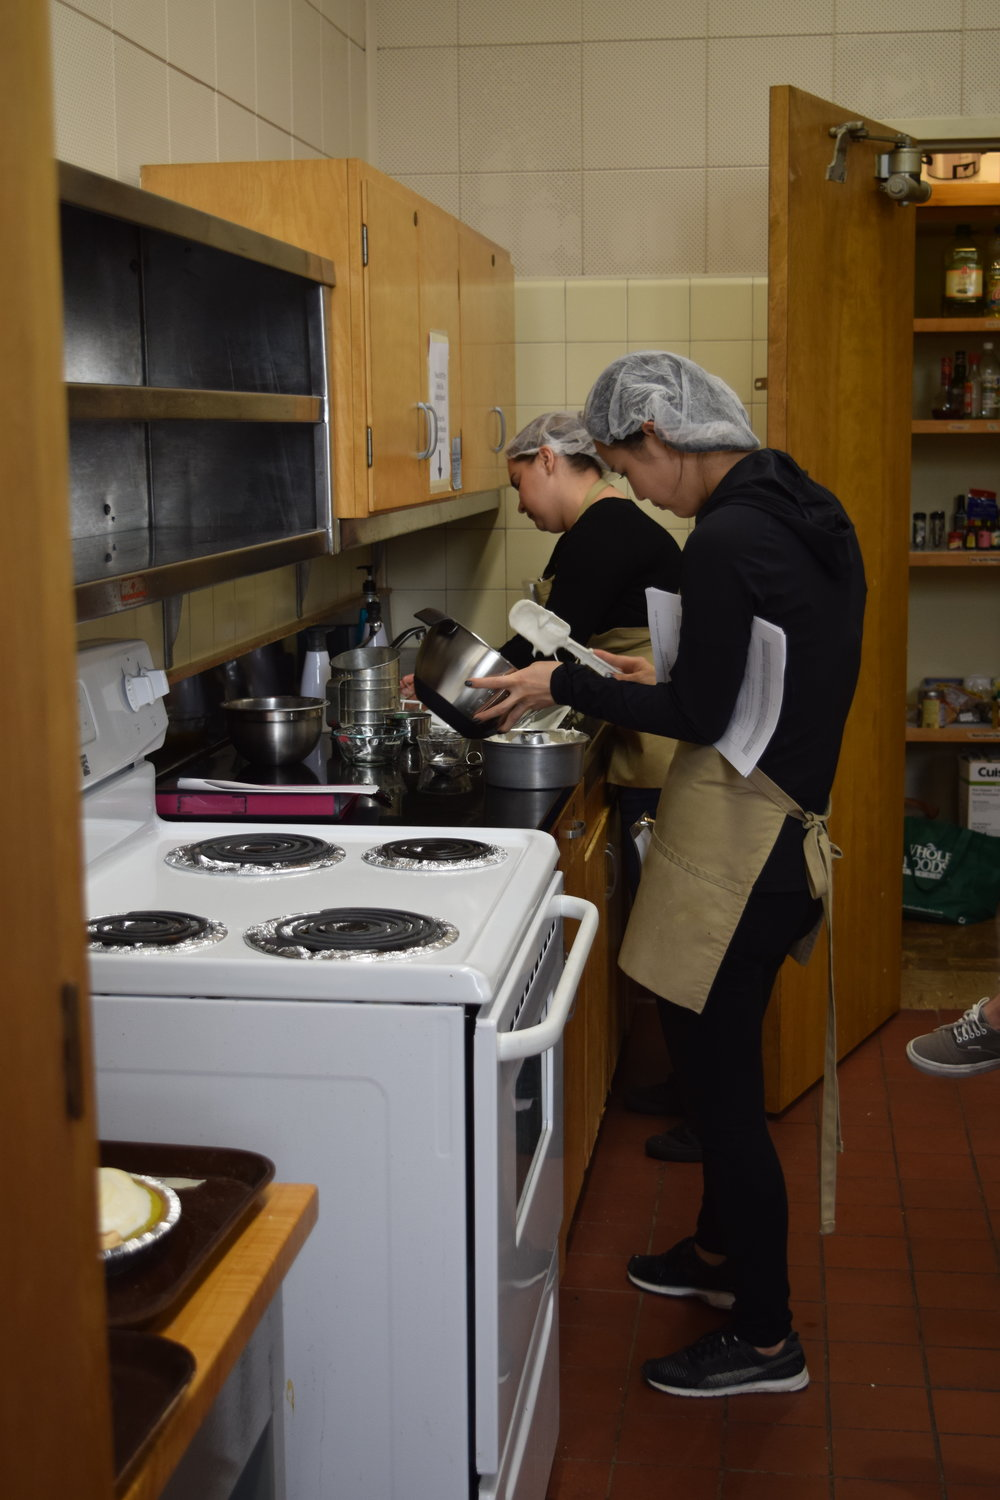 Photos are of the classroom and a cooking experience similar to NST 20.